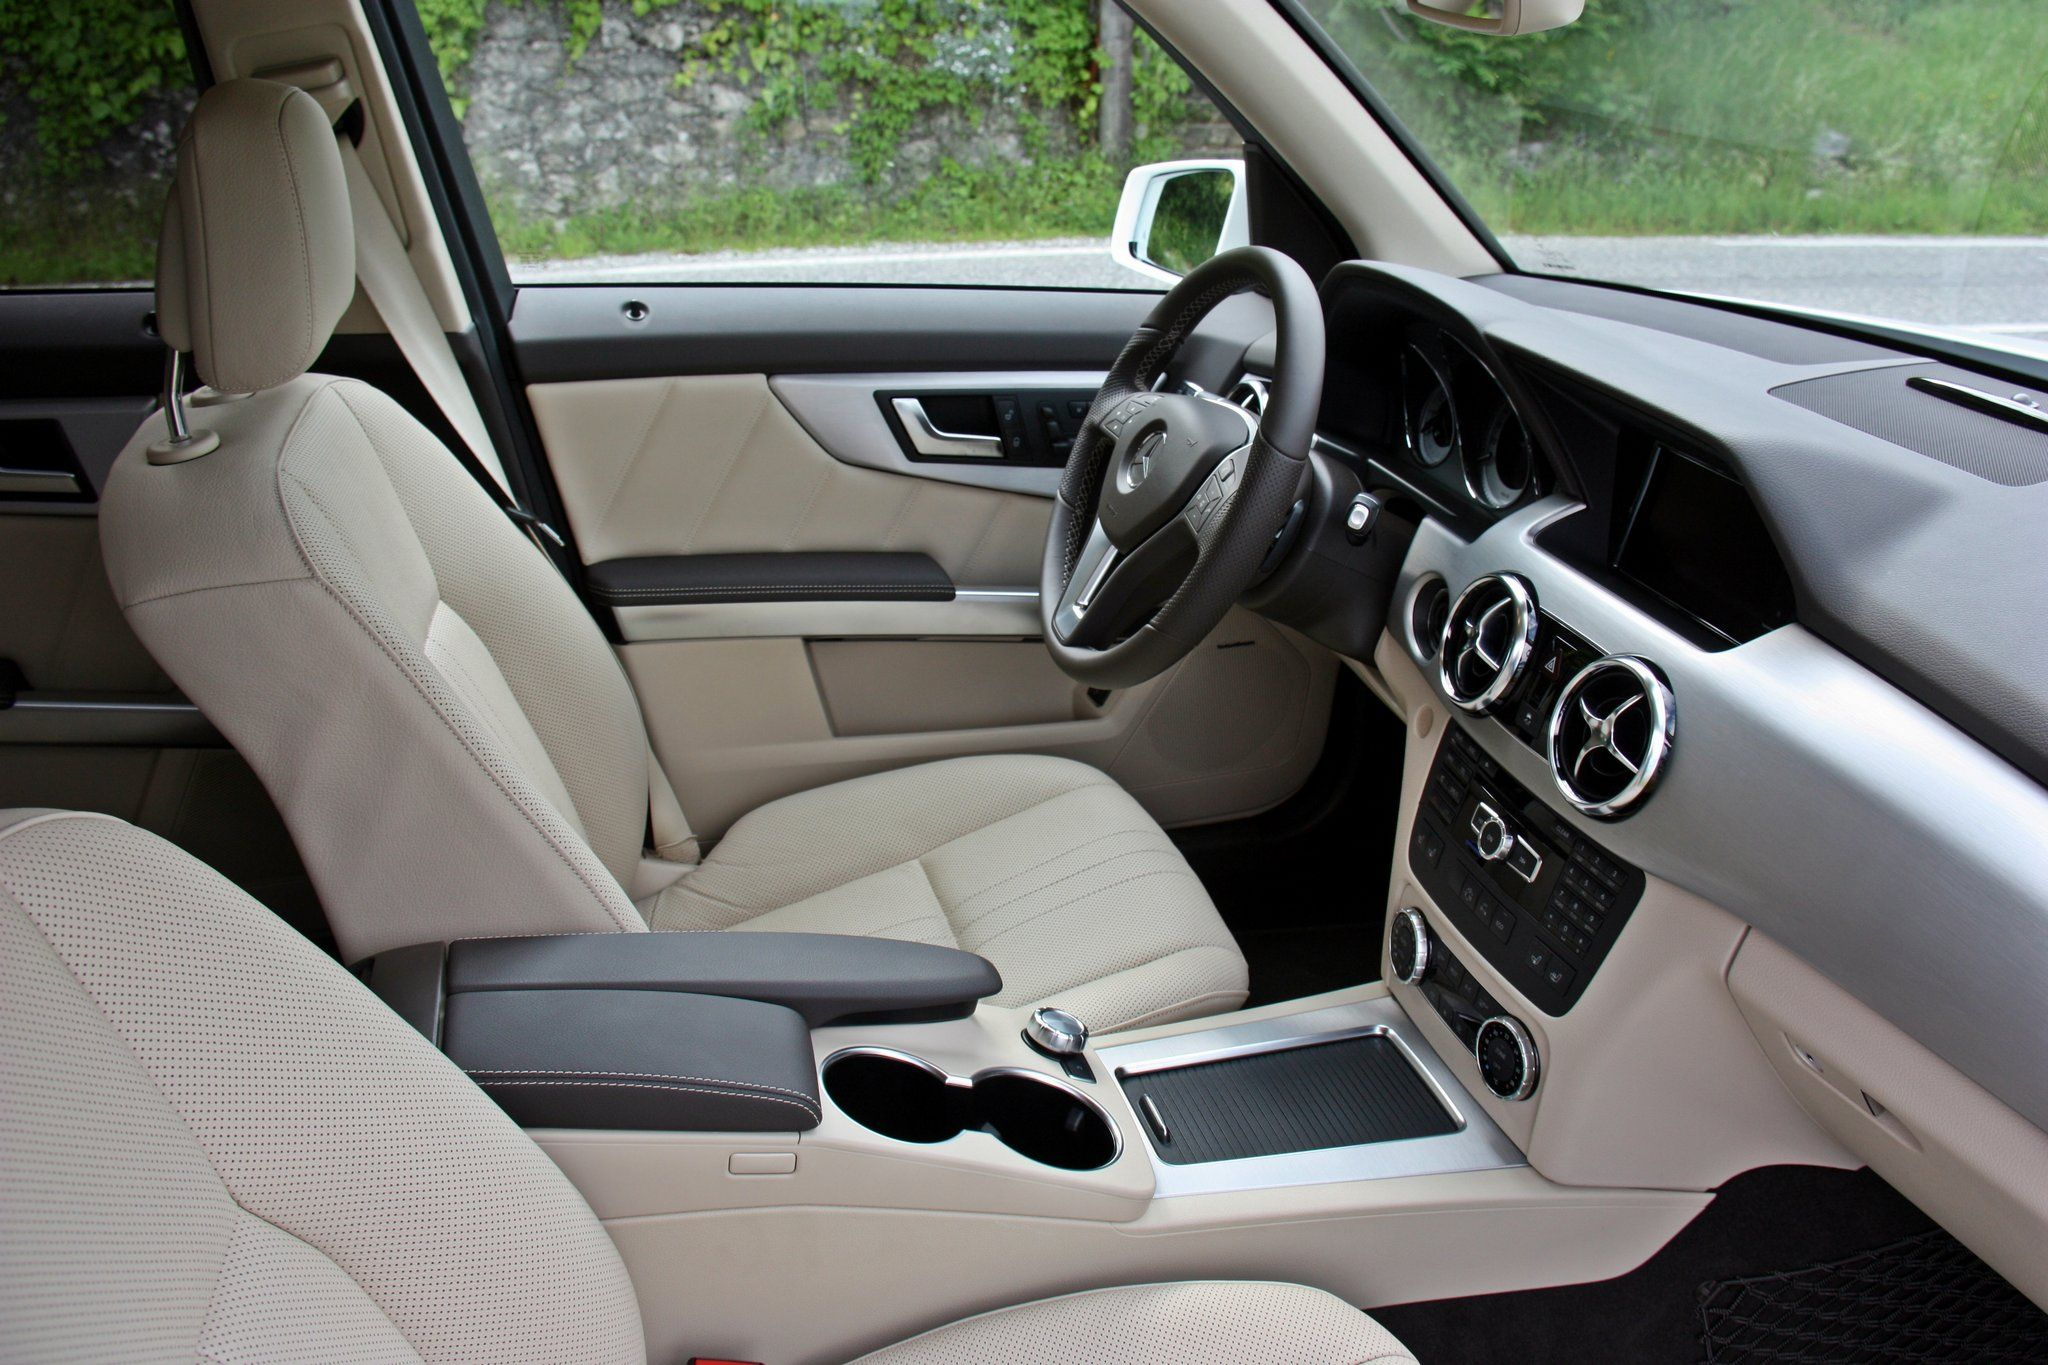 """GLK 250 BlueTEC 4MATIC. Fuel consumption combined: 6,5 - 6,1l/100 km, CO2 emissions combined: 169 - 159 (g/km). The data do not relate to an individual vehicle and do not form part of the offer; they are provided solely for the purposes of comparison between different types of vehicles. The figures are provided in accordance with the German regulation """"PKW-EnVKV"""" and apply to the German market only. #mbhess #mbcars #mbglk"""